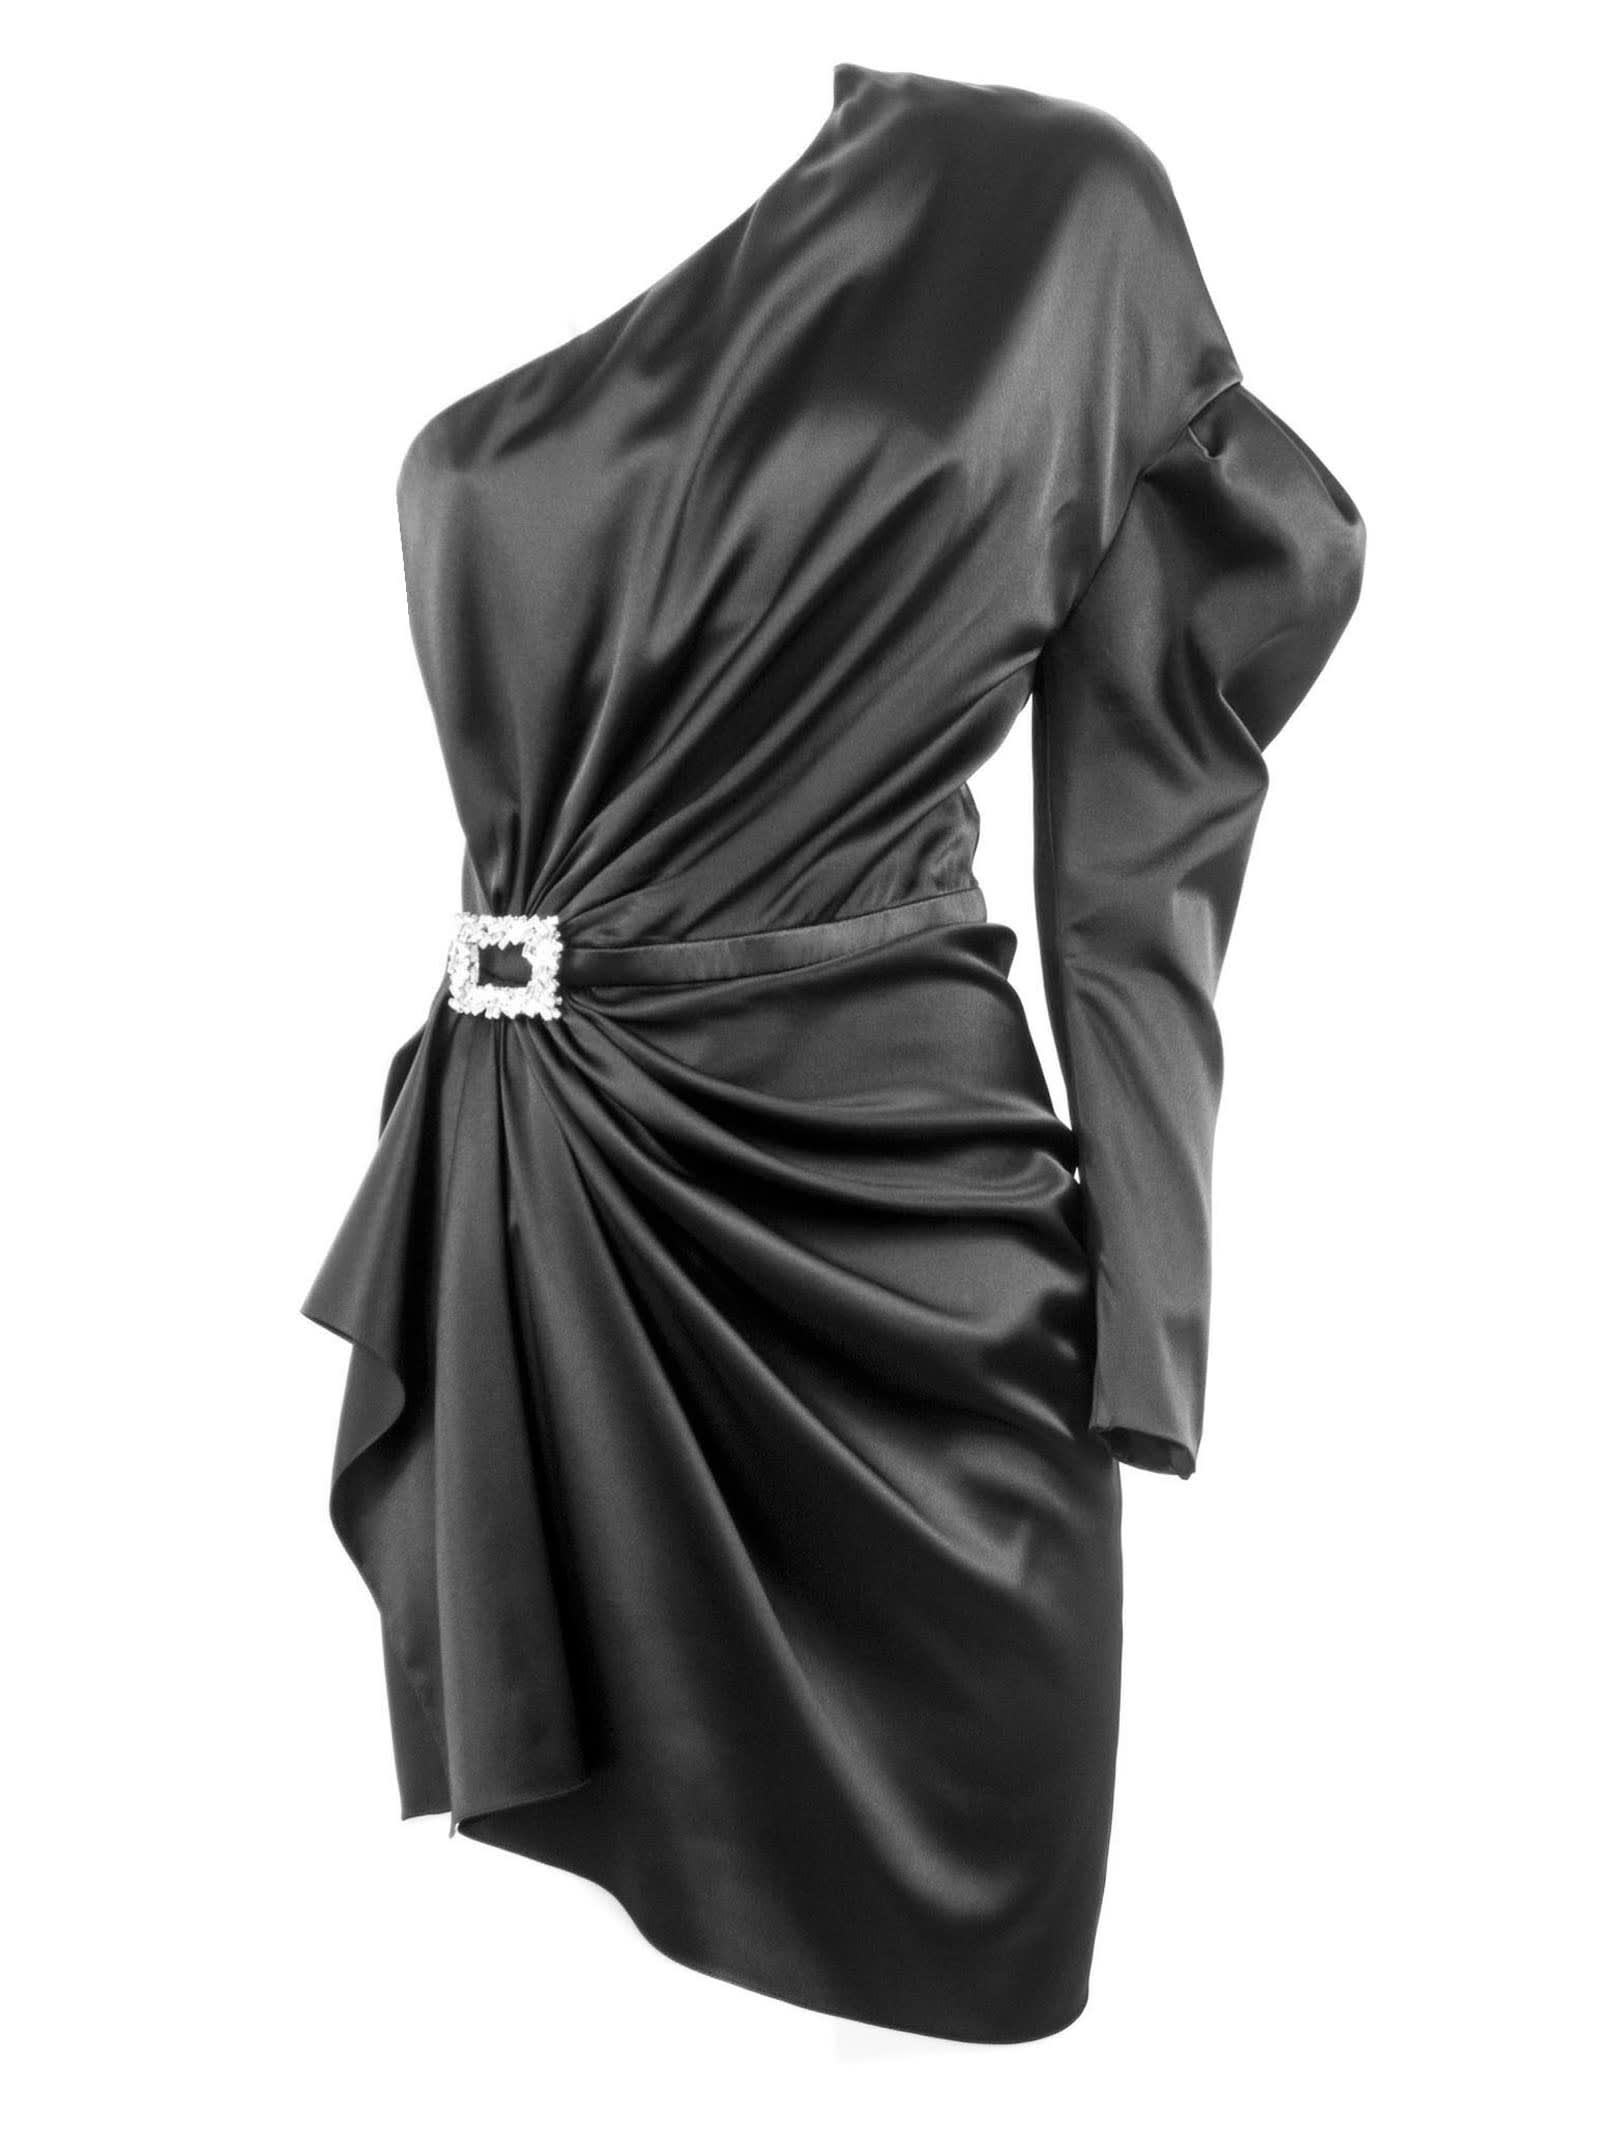 Alexandre Vauthier Black Silk Blend Mini Dress